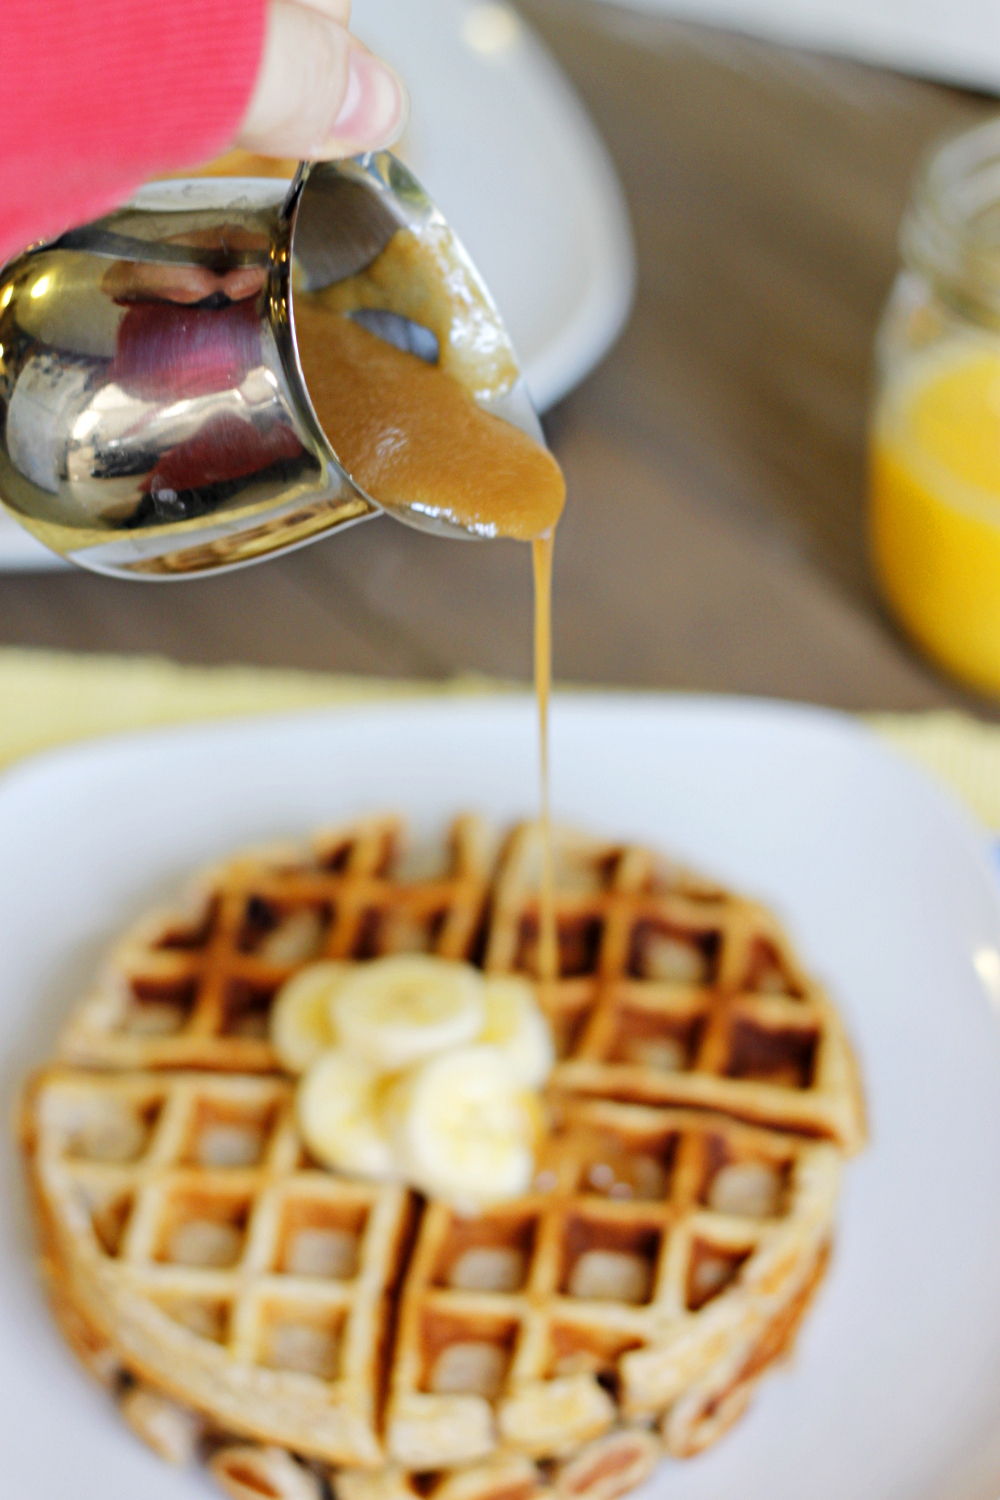 Banana Waffles with Peanut Butter Maple Syrup